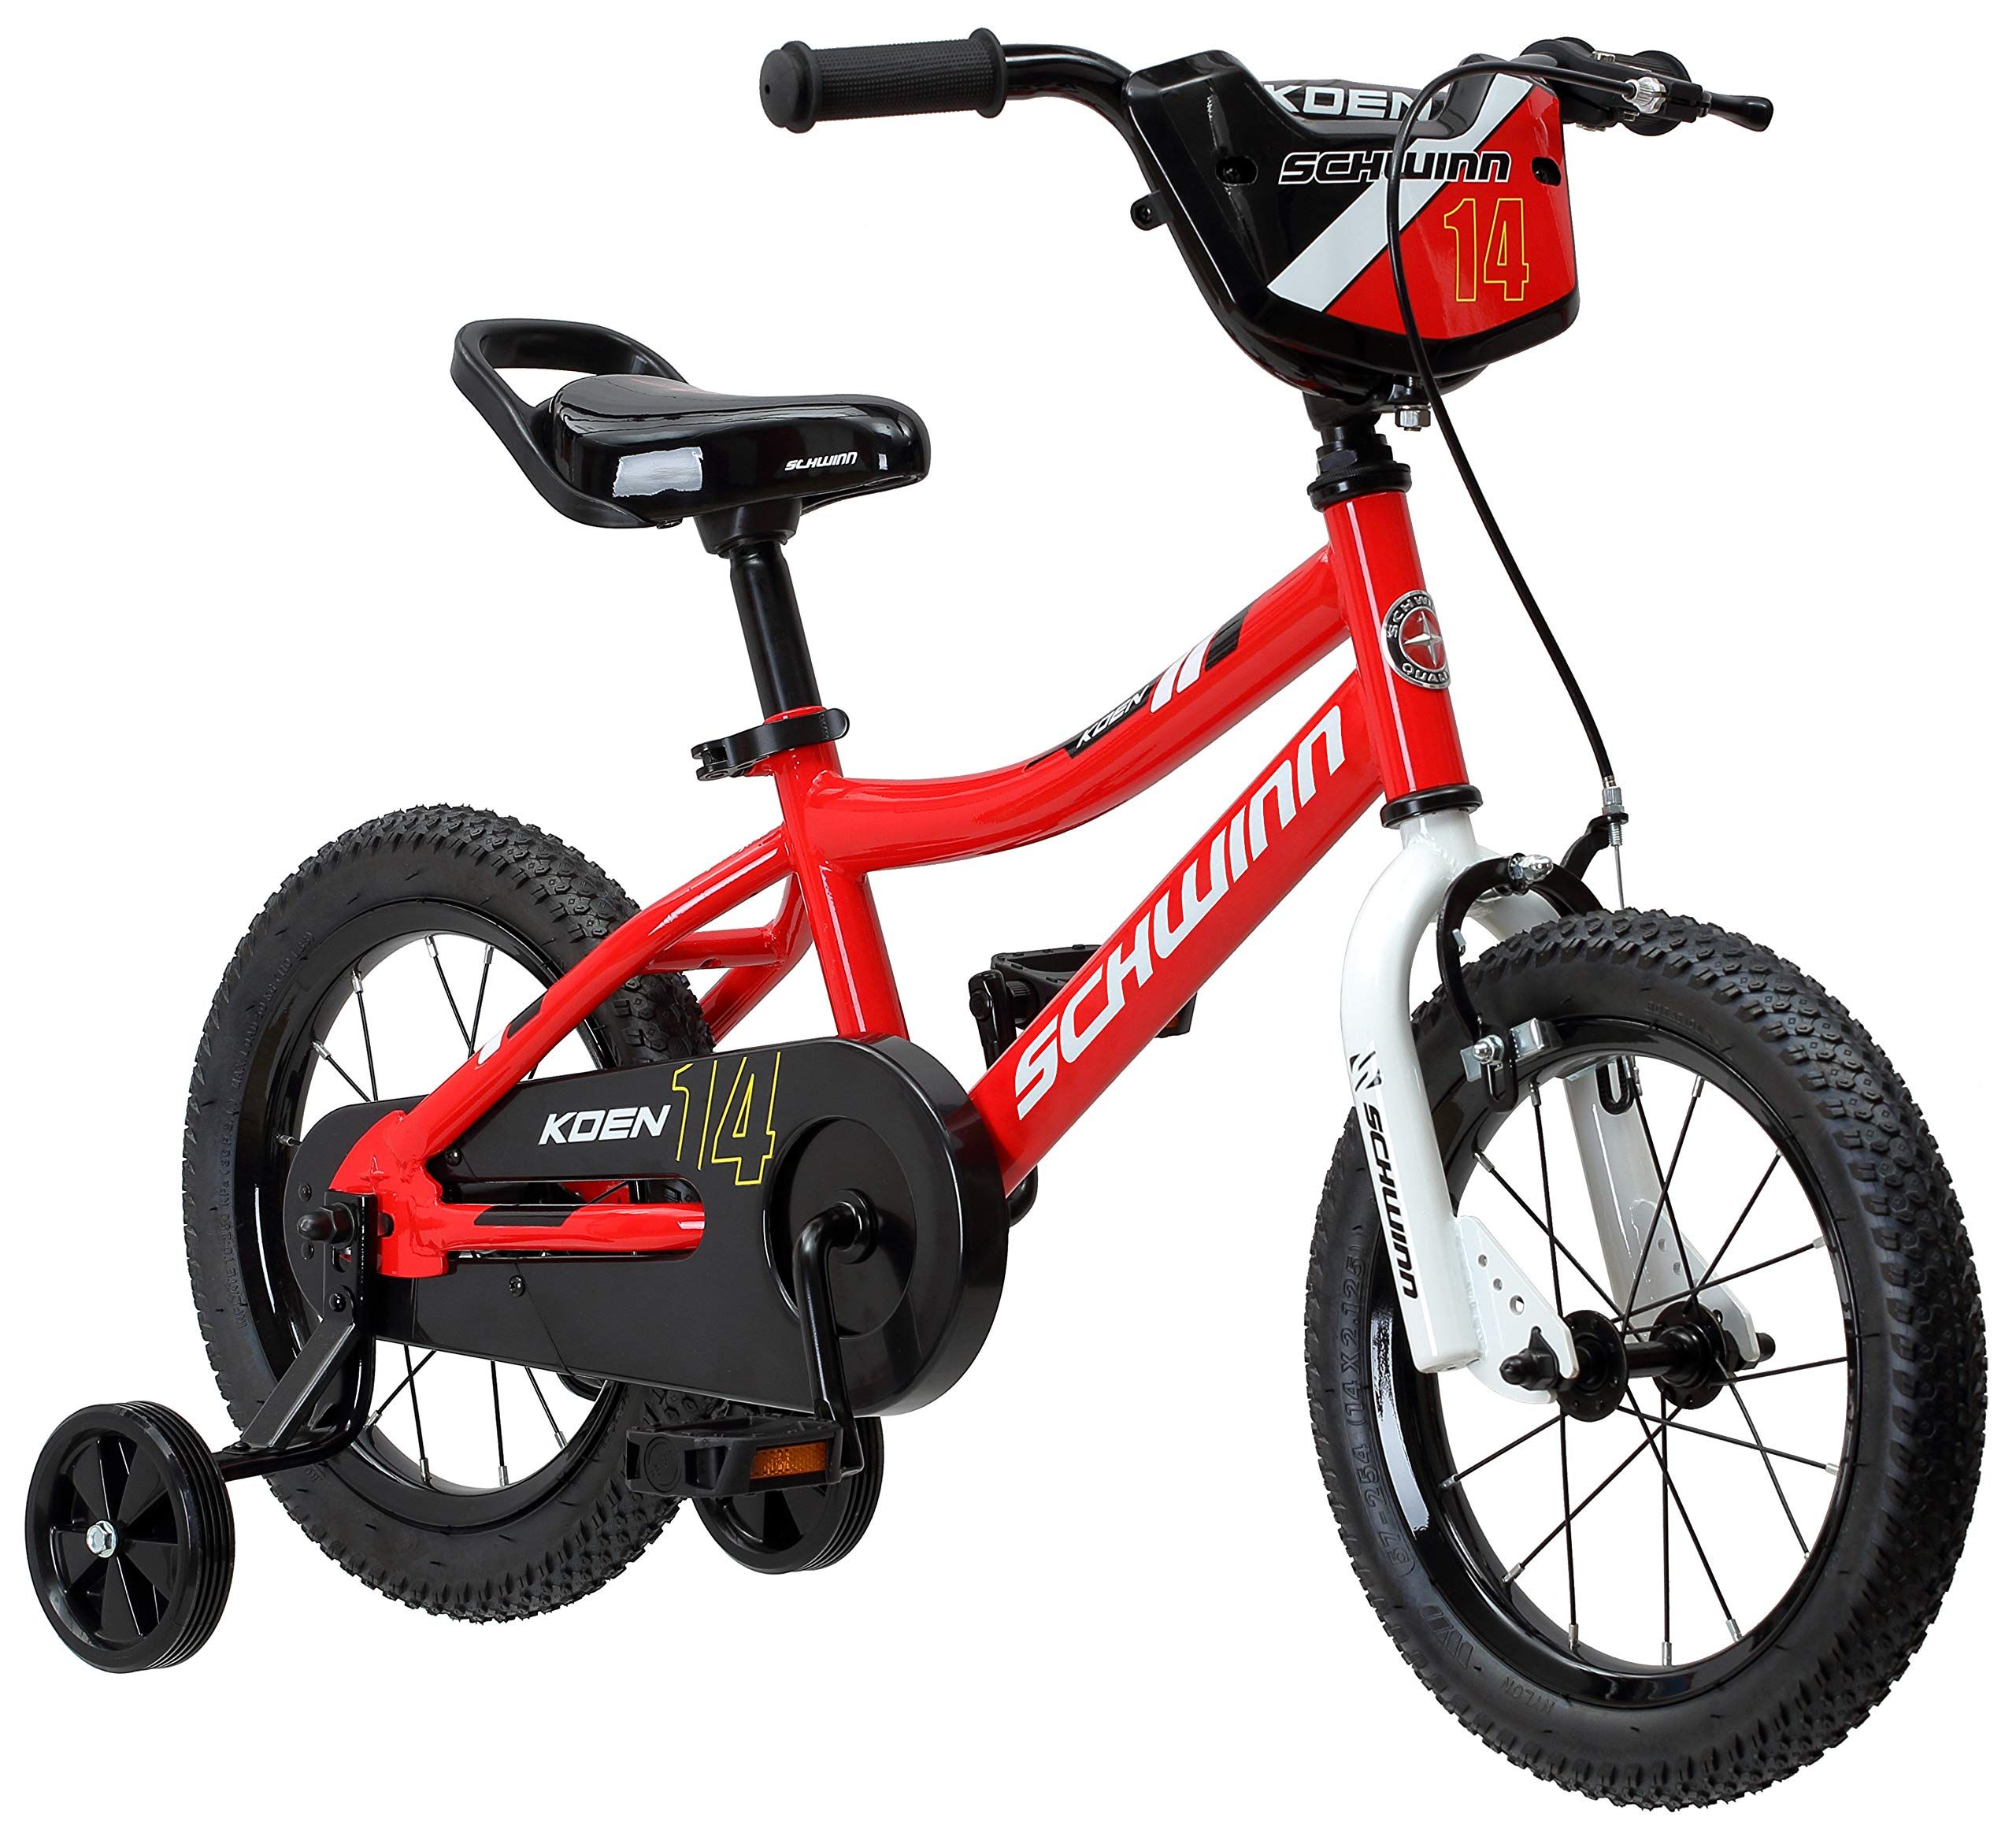 Schwinn Koen Boy's Bike with SmartStart, 14'' Wheels, Red